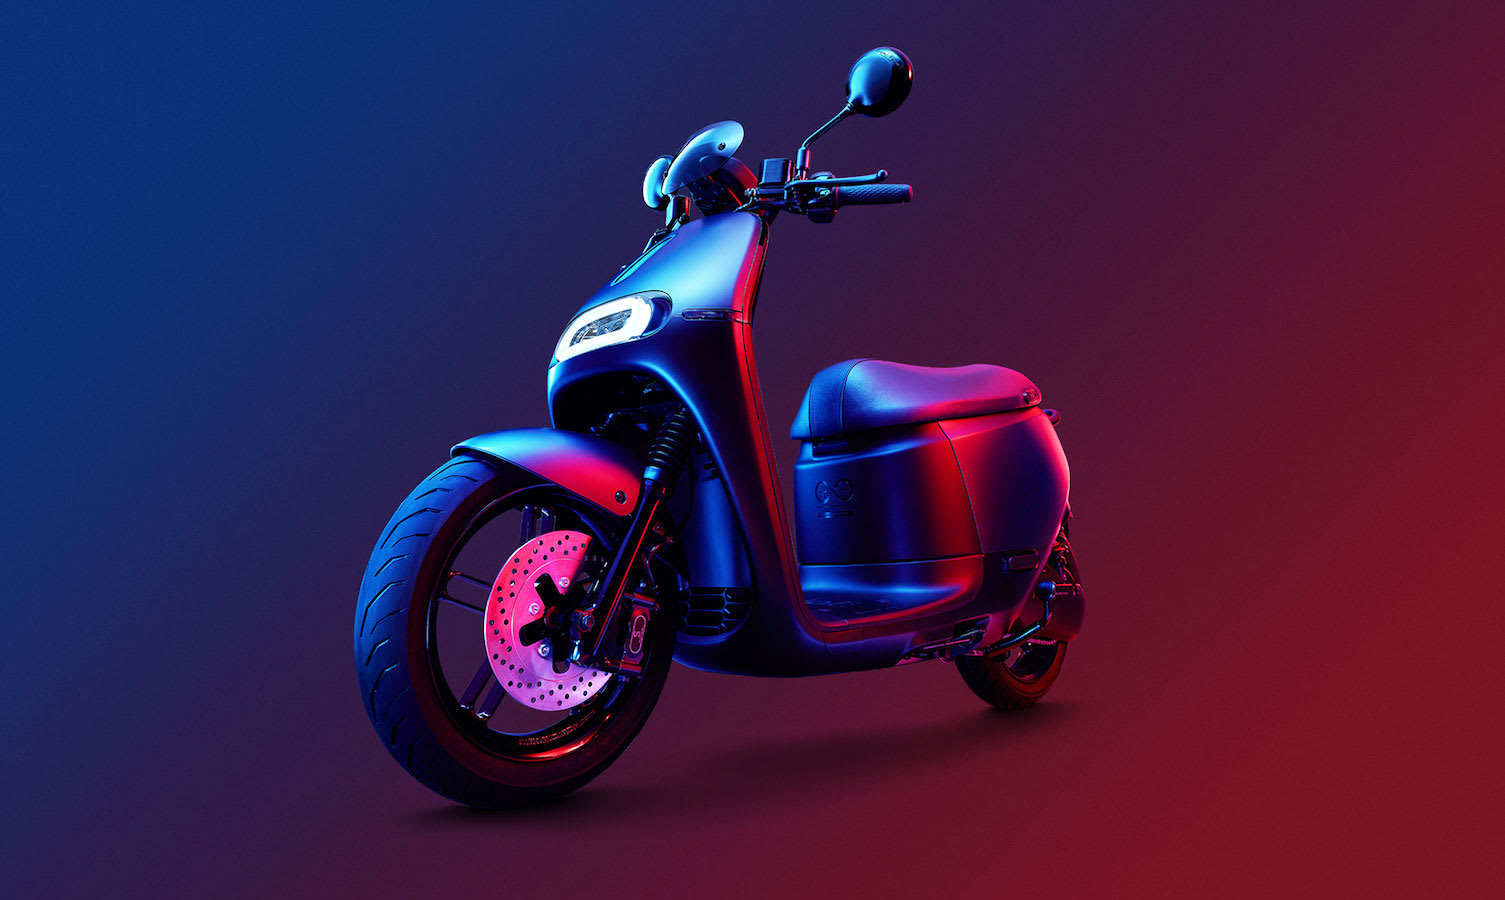 Gogoro puts its hot-swappable batteries in two new speedy